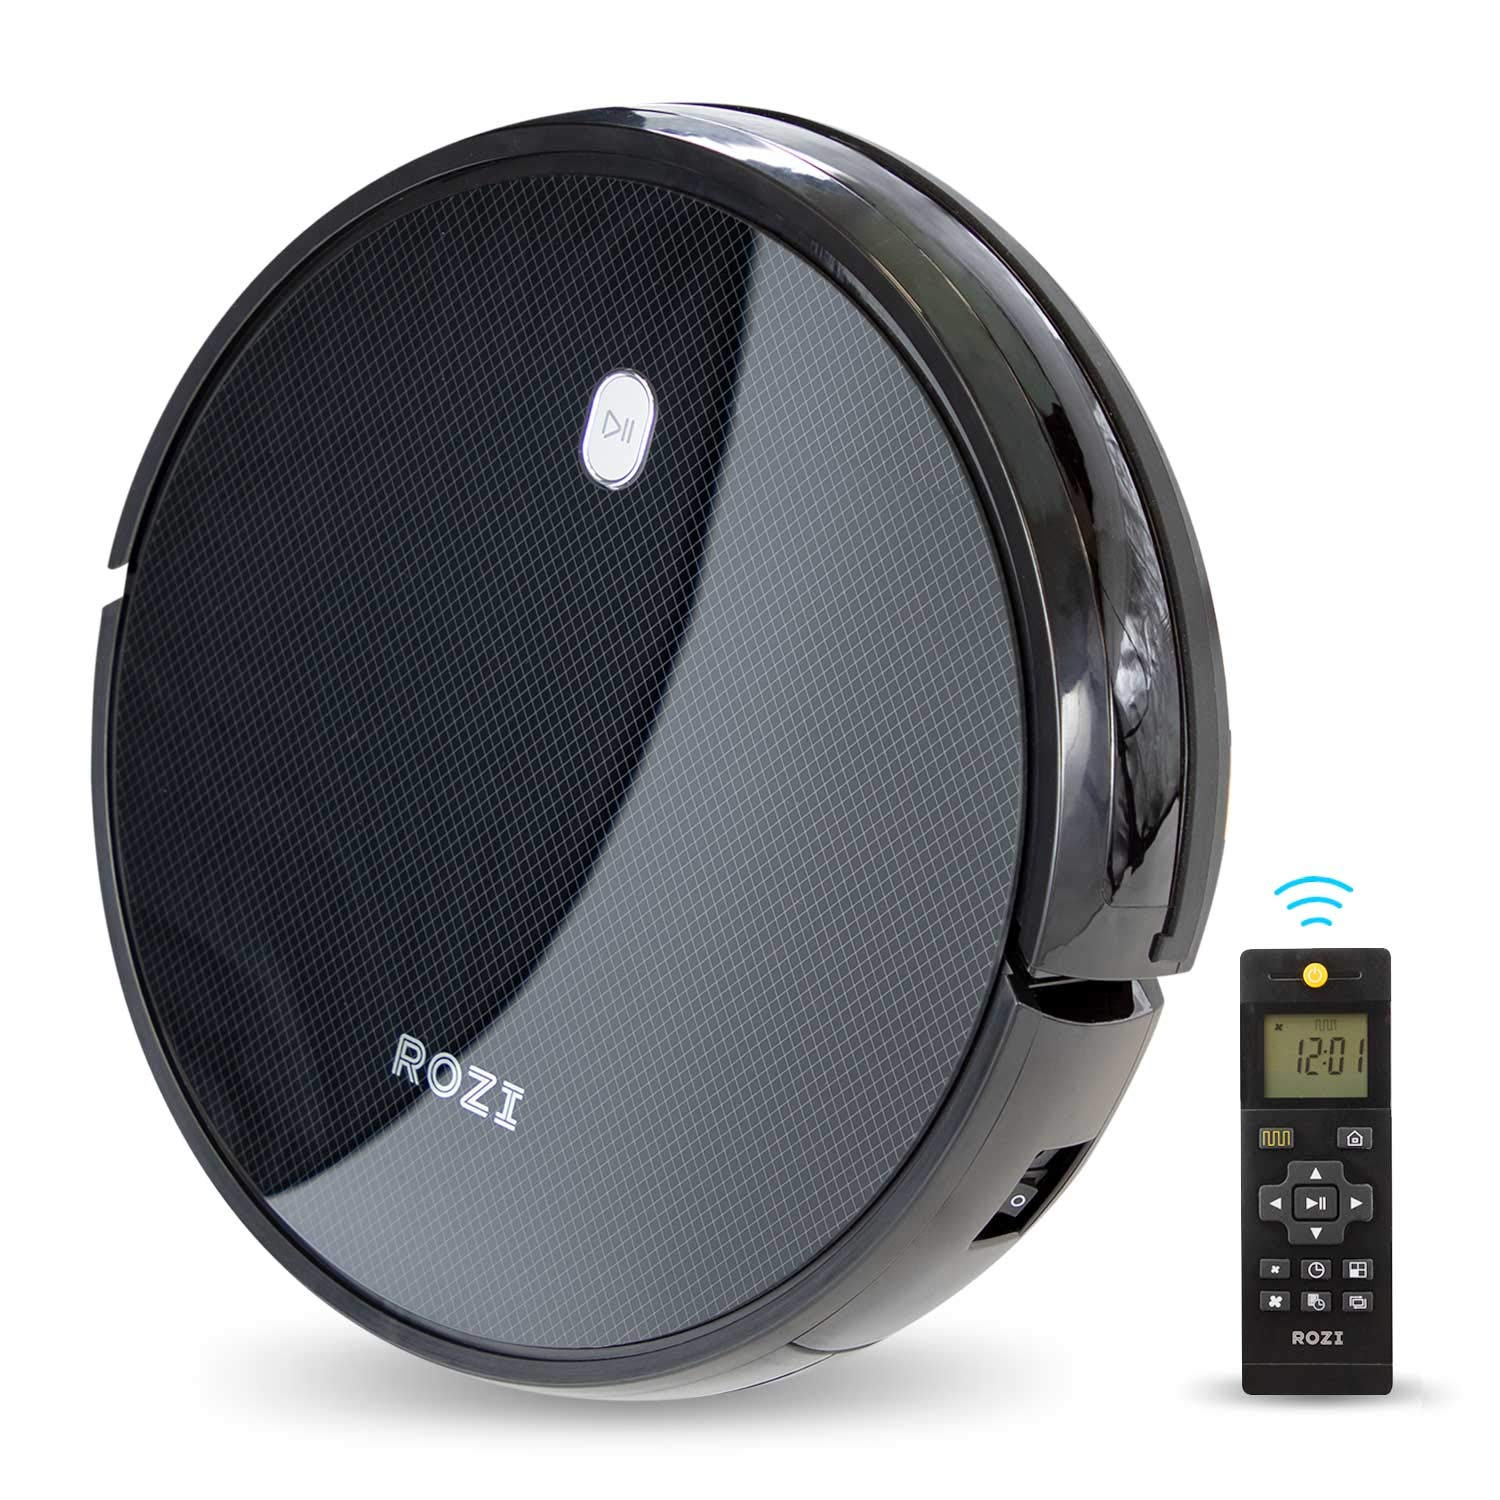 Robot Vacuum, 1600Pa Strong Suction, Smart Navi-System, 120mins Long Lasting, Quick Auto Charge, Multiple Cleaning Modes, Timing Function, Best for Pet Hair, Hard Floor & Low-Pile Carpet(Black) by ROZI